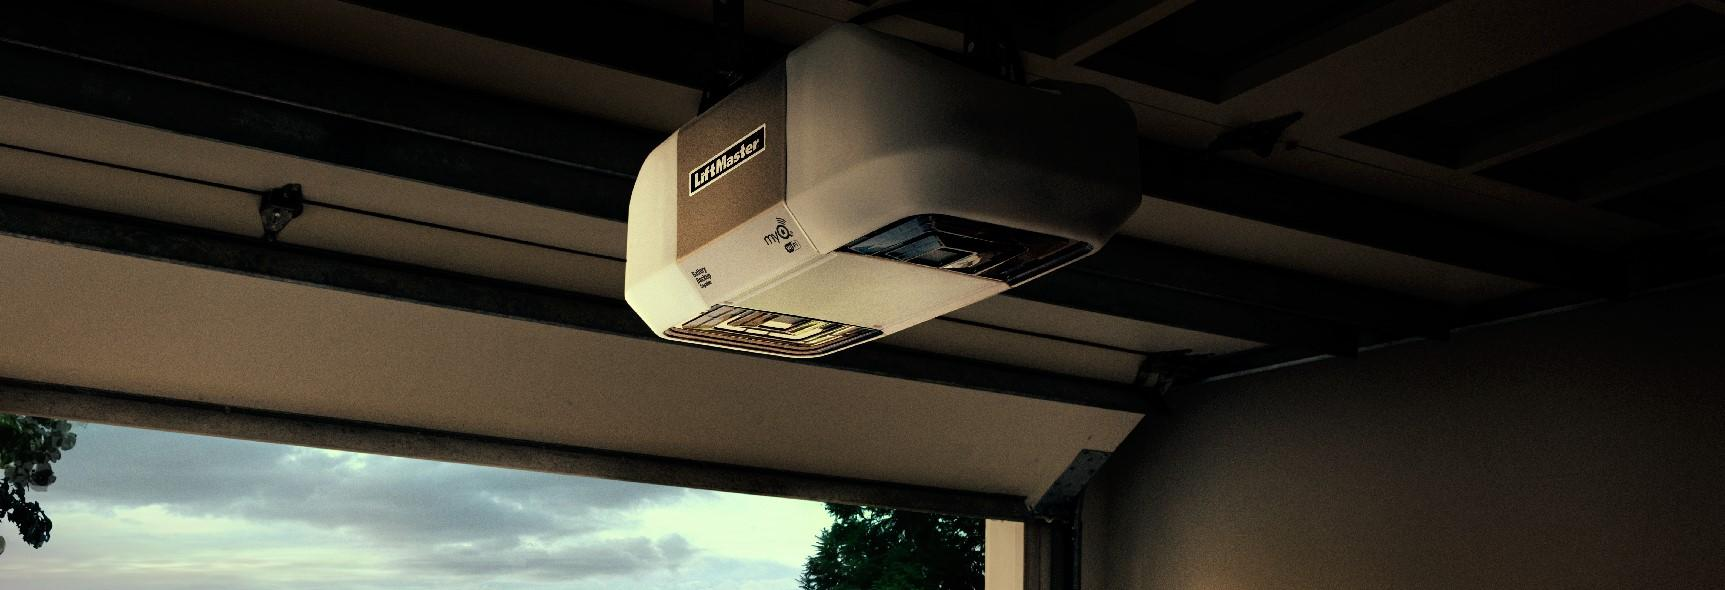 Liftmaster Garage Door Installation in Phoenix, AZ